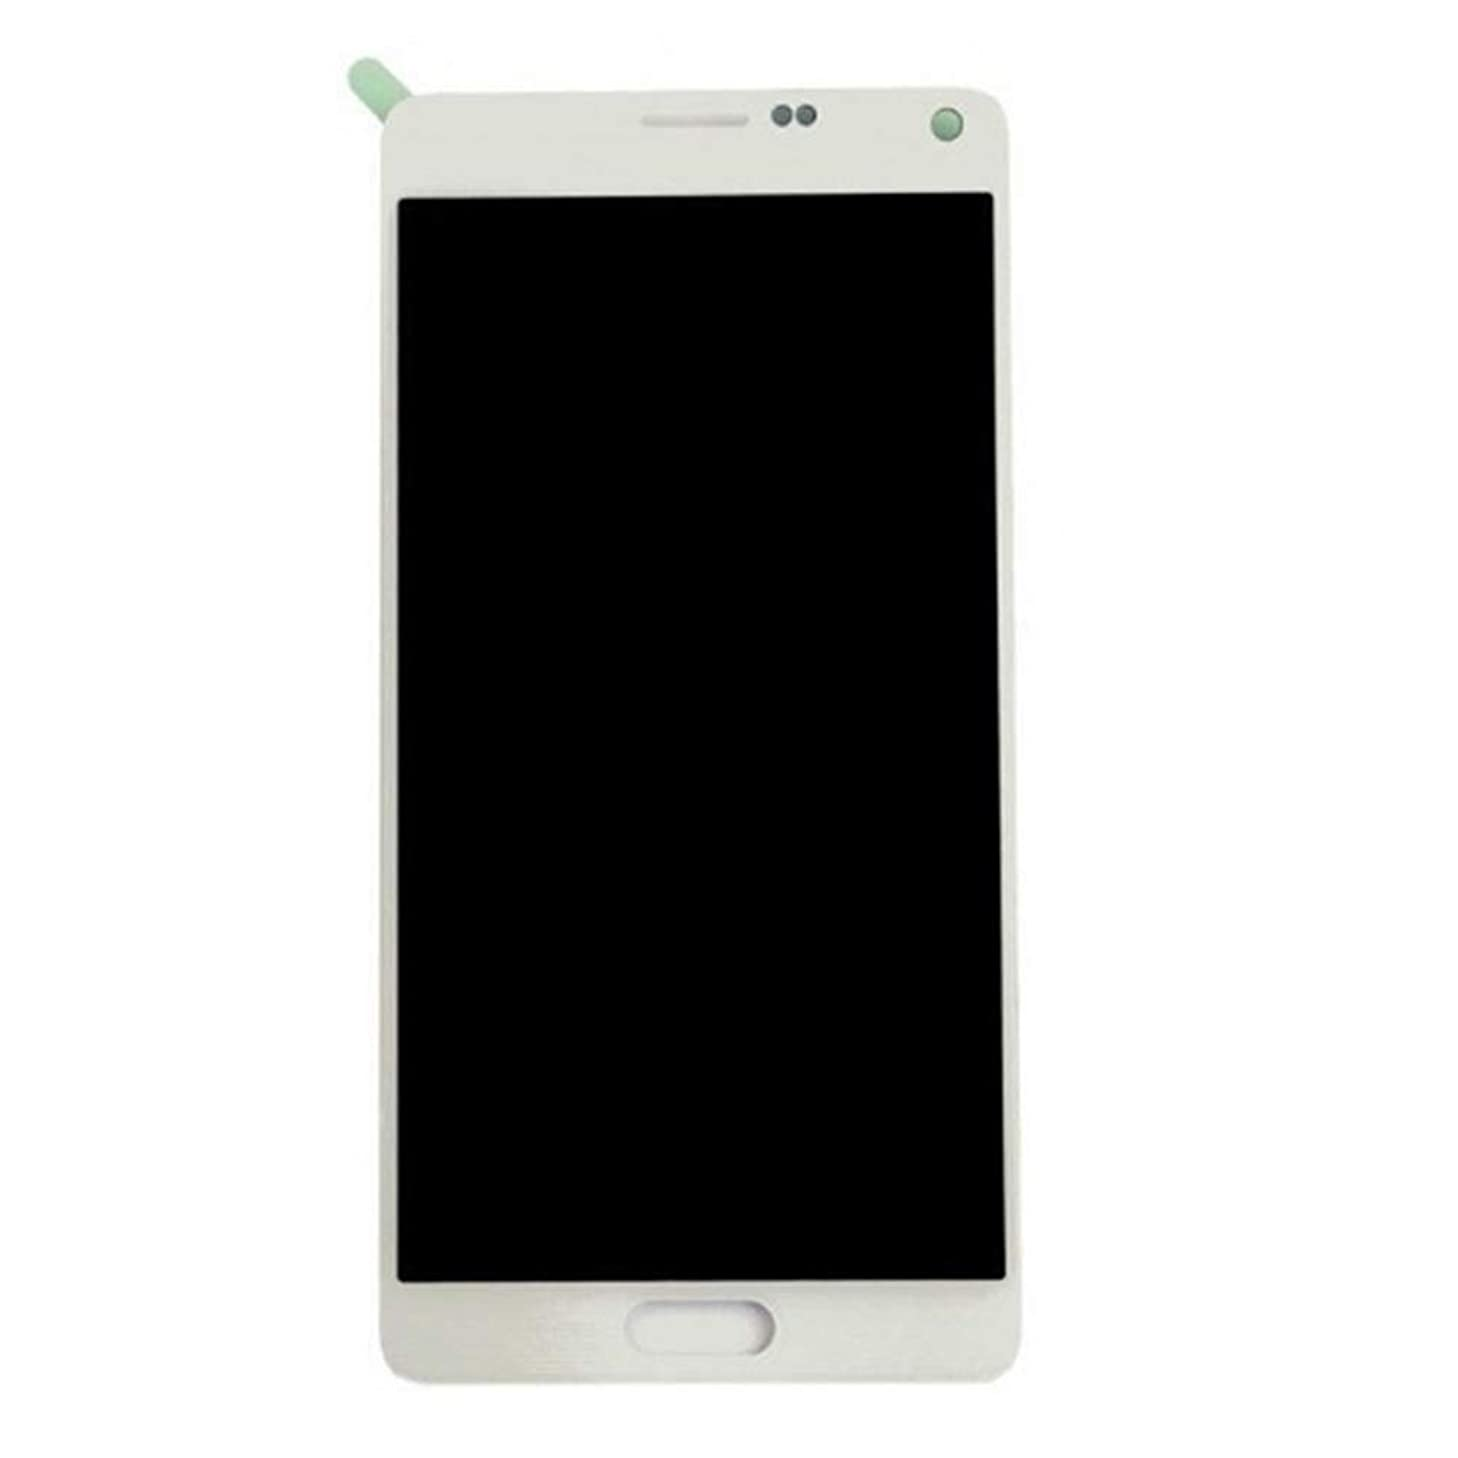 putdWH99 Internal Phone Parts   Phone Replacement Parts LCD Screen Digitizer for Samsung Galaxy Note 4 N910 - White